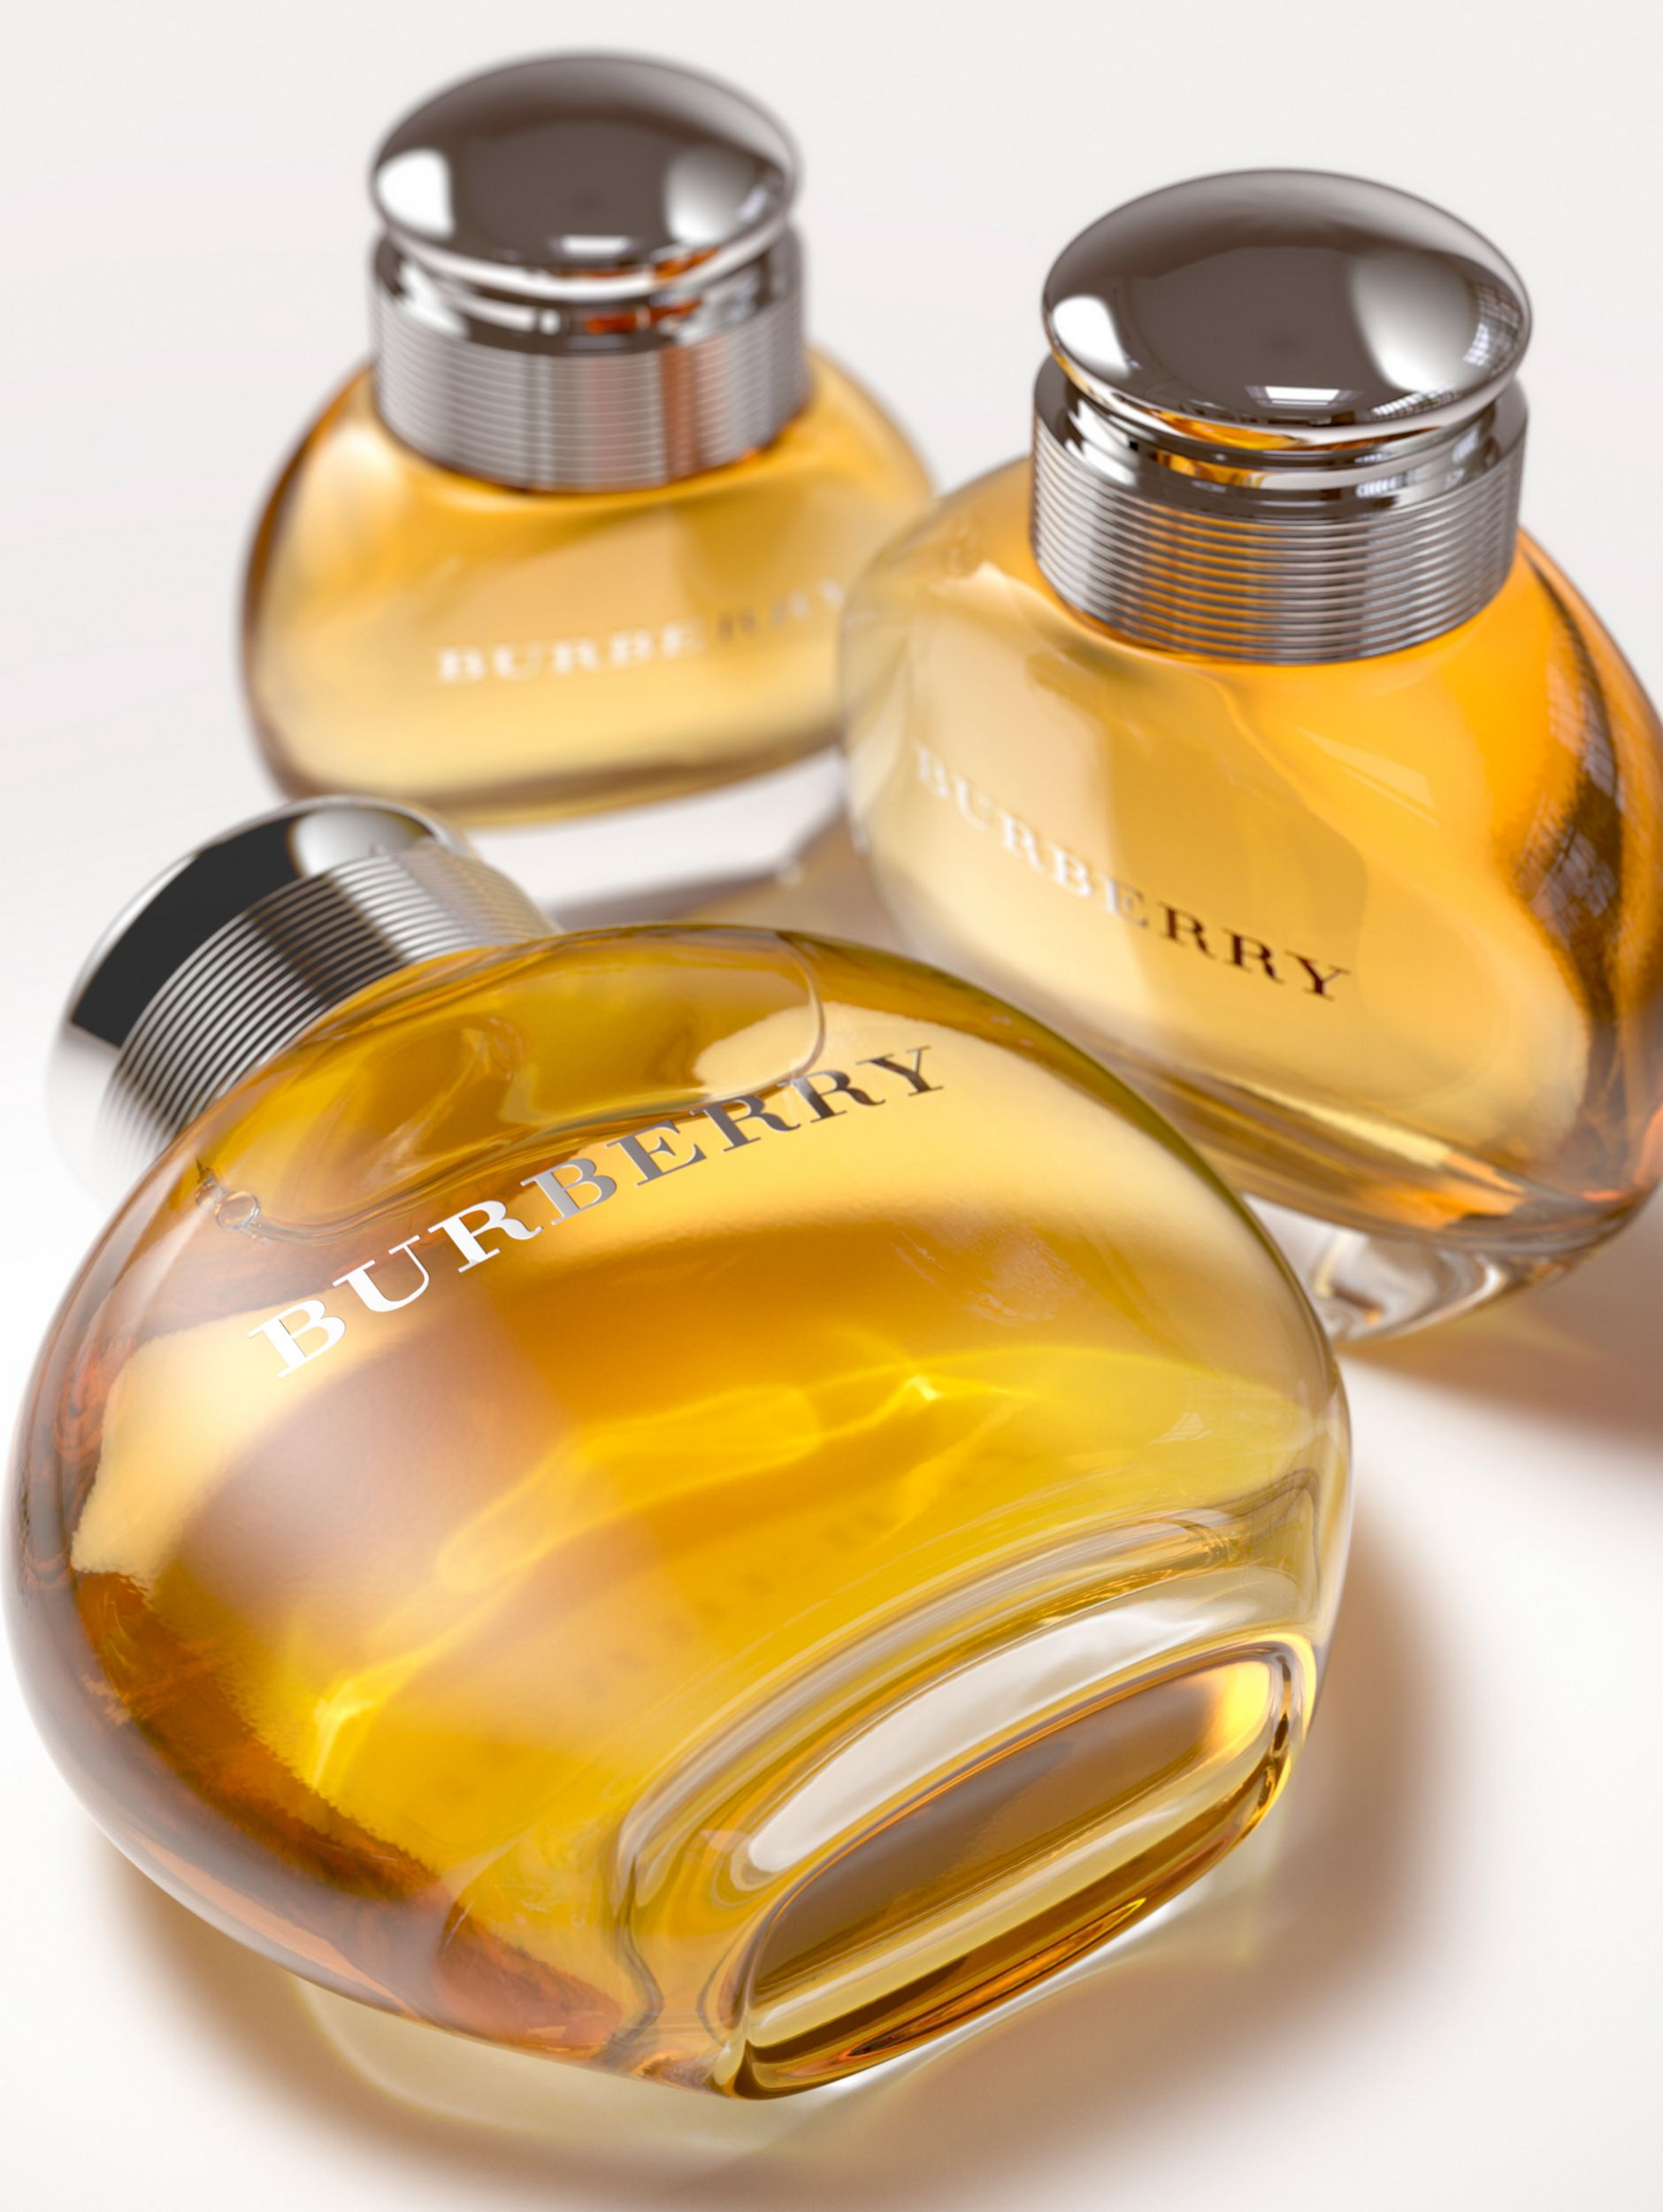 Burberry For Women Eau de Parfum 100ml - Women | Burberry - 2